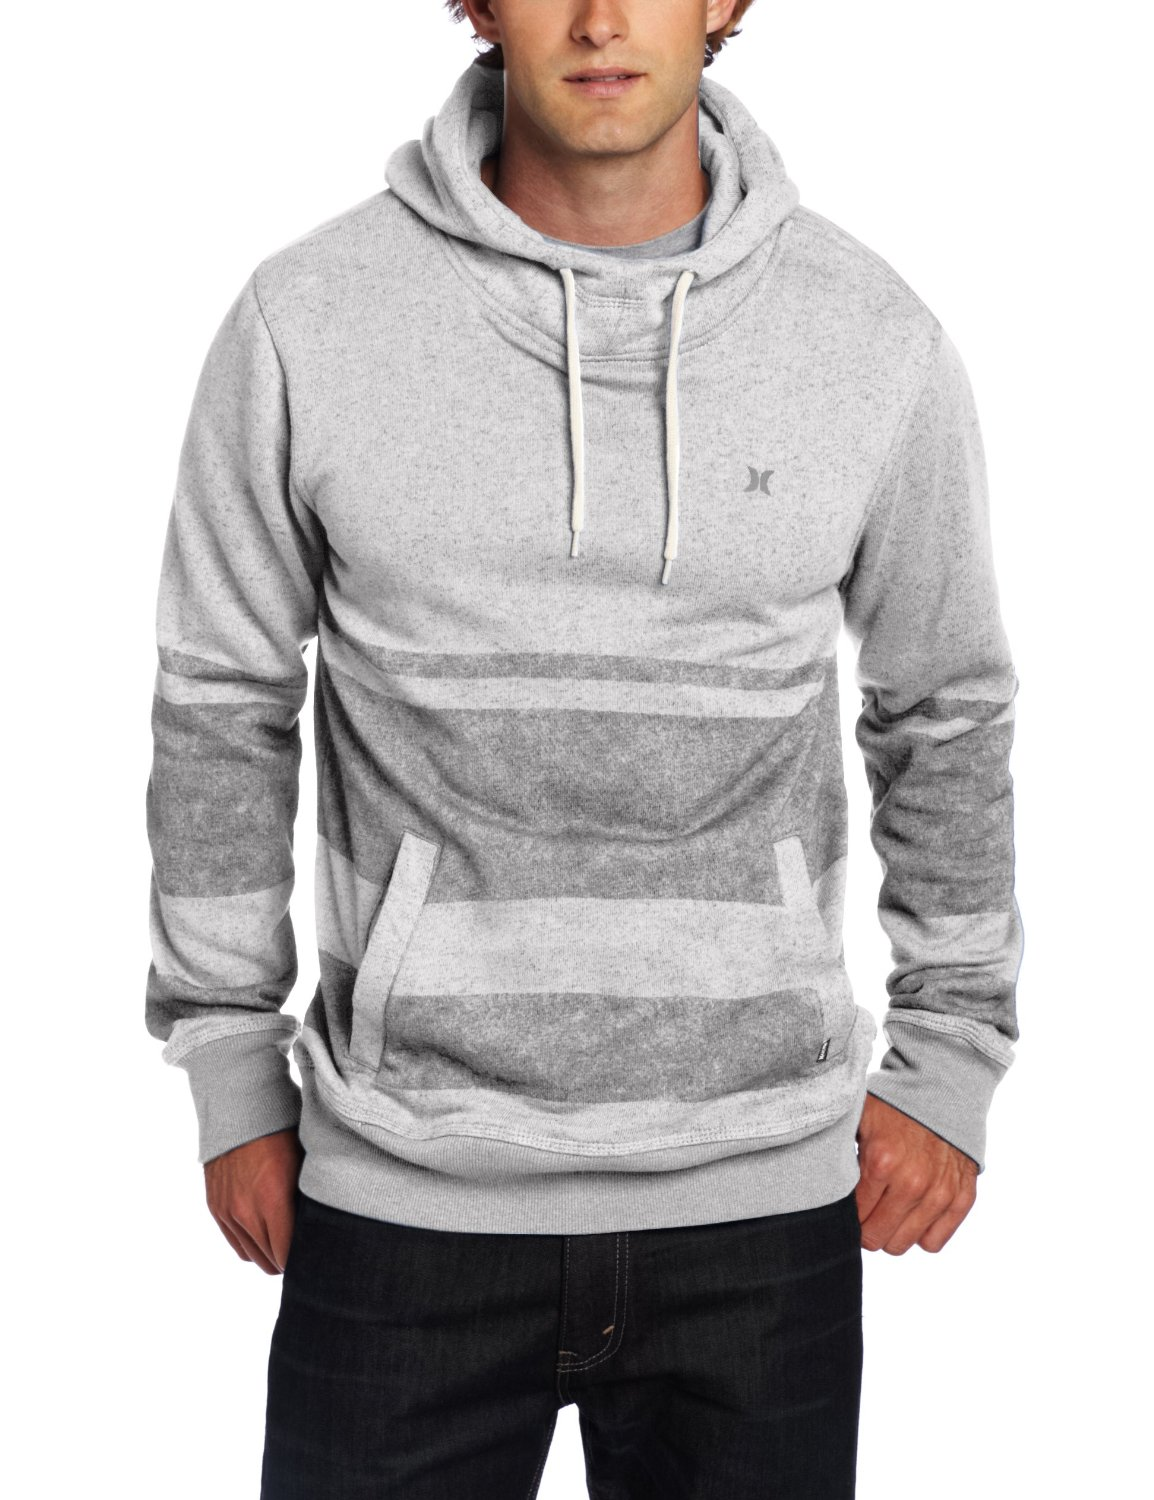 This medium weight O fleece hoodie over your head and get going. Shop Best Sellers · Deals of the Day · Fast Shipping · Read Ratings & Reviews.